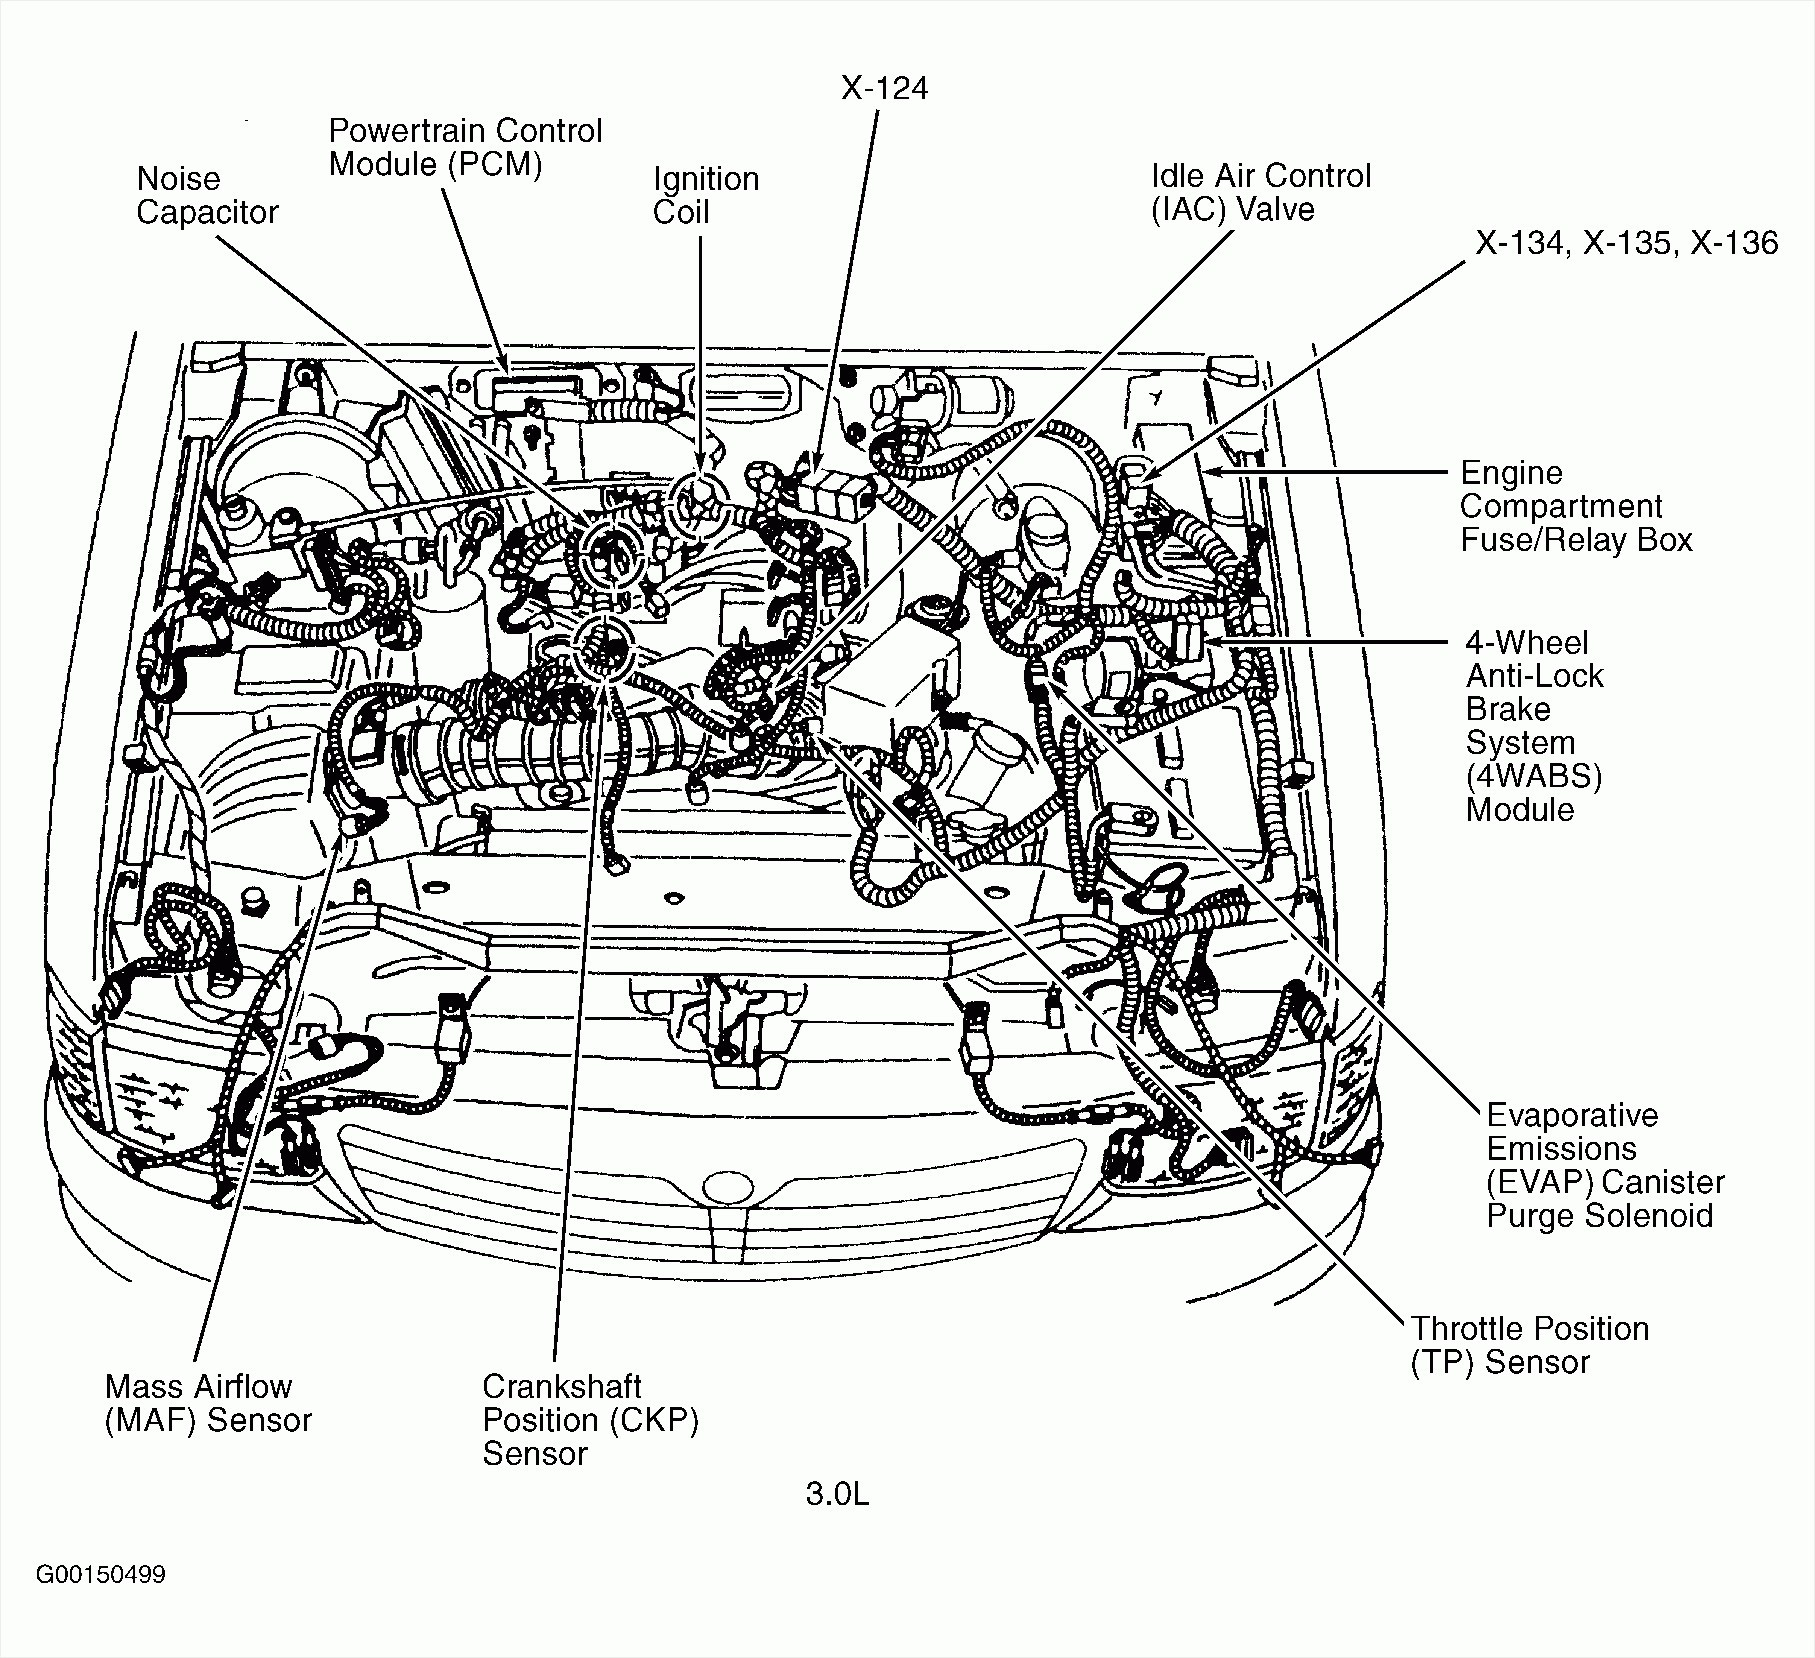 1985 Caprice Wiring Diagram